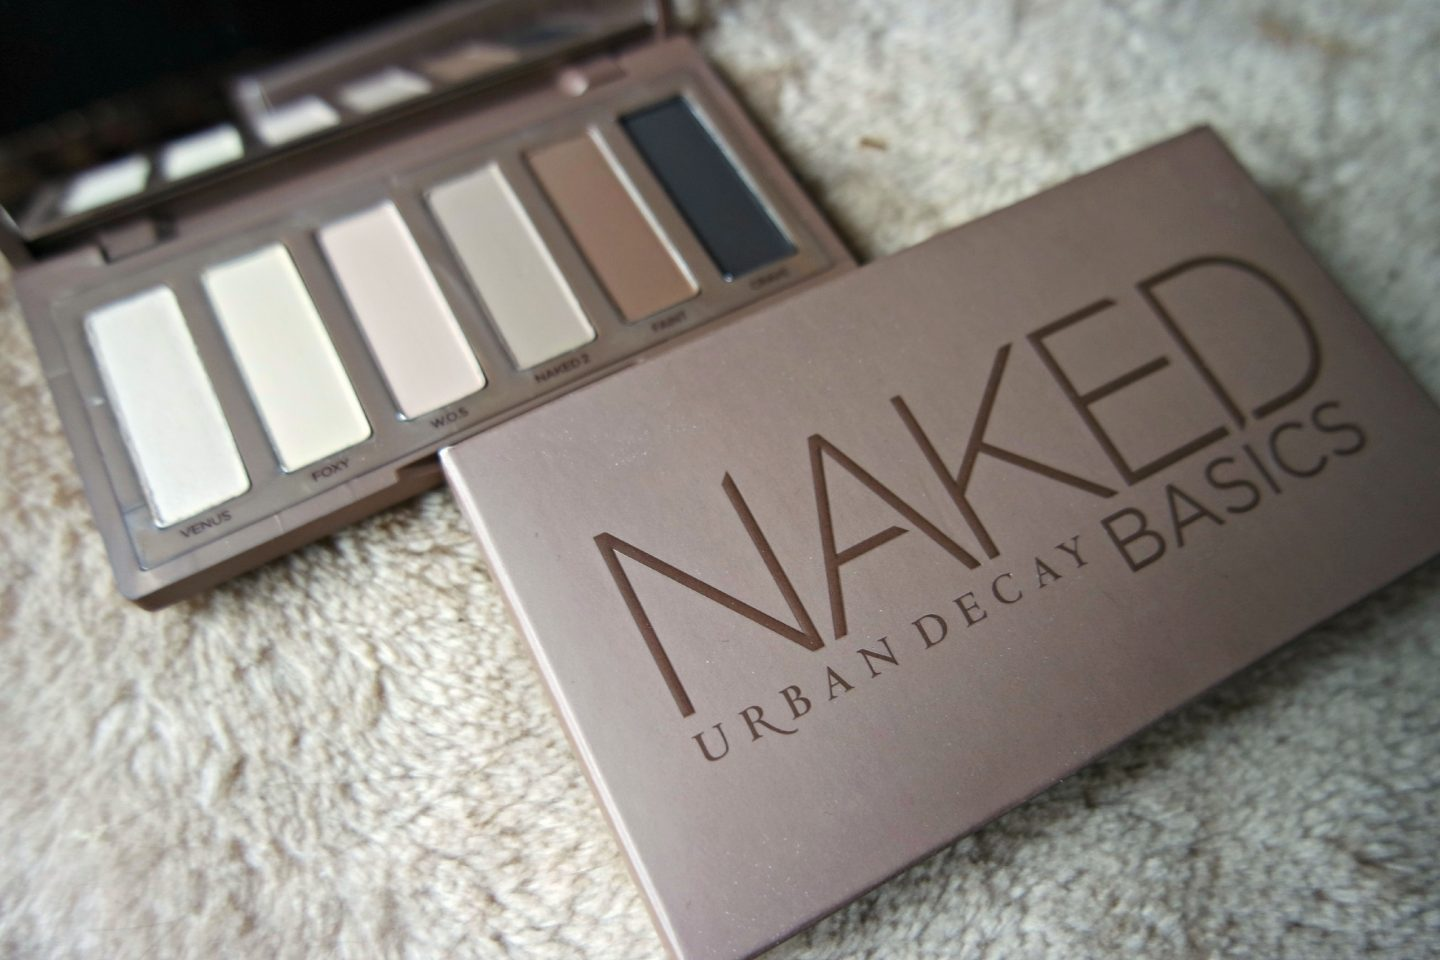 Urban Decay Naked Basics Review + Instagram Giveaway